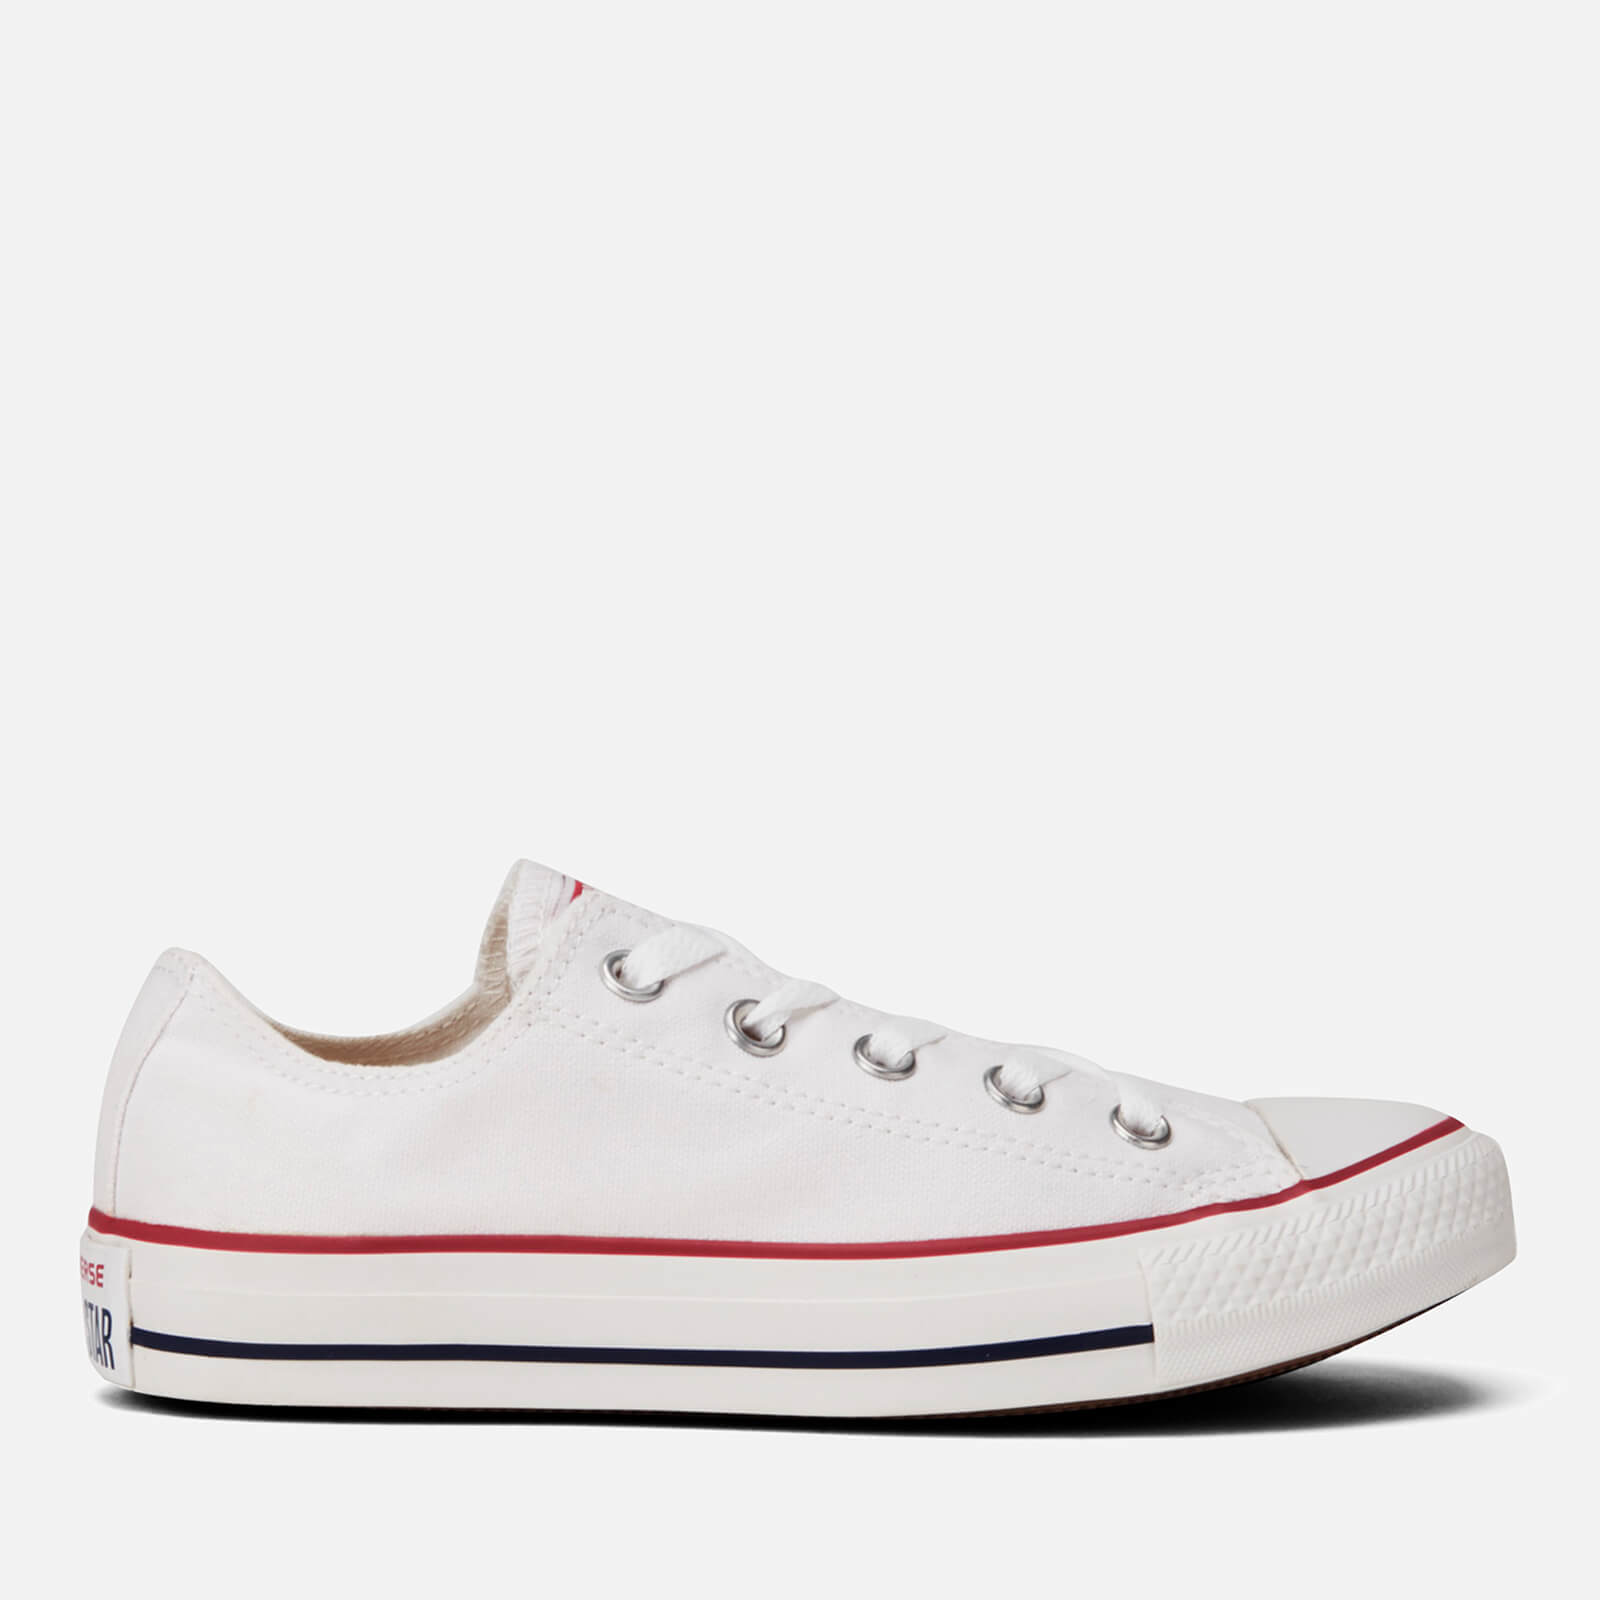 Converse Chuck Taylor All Star Ox Trainers Optical White Uk 11